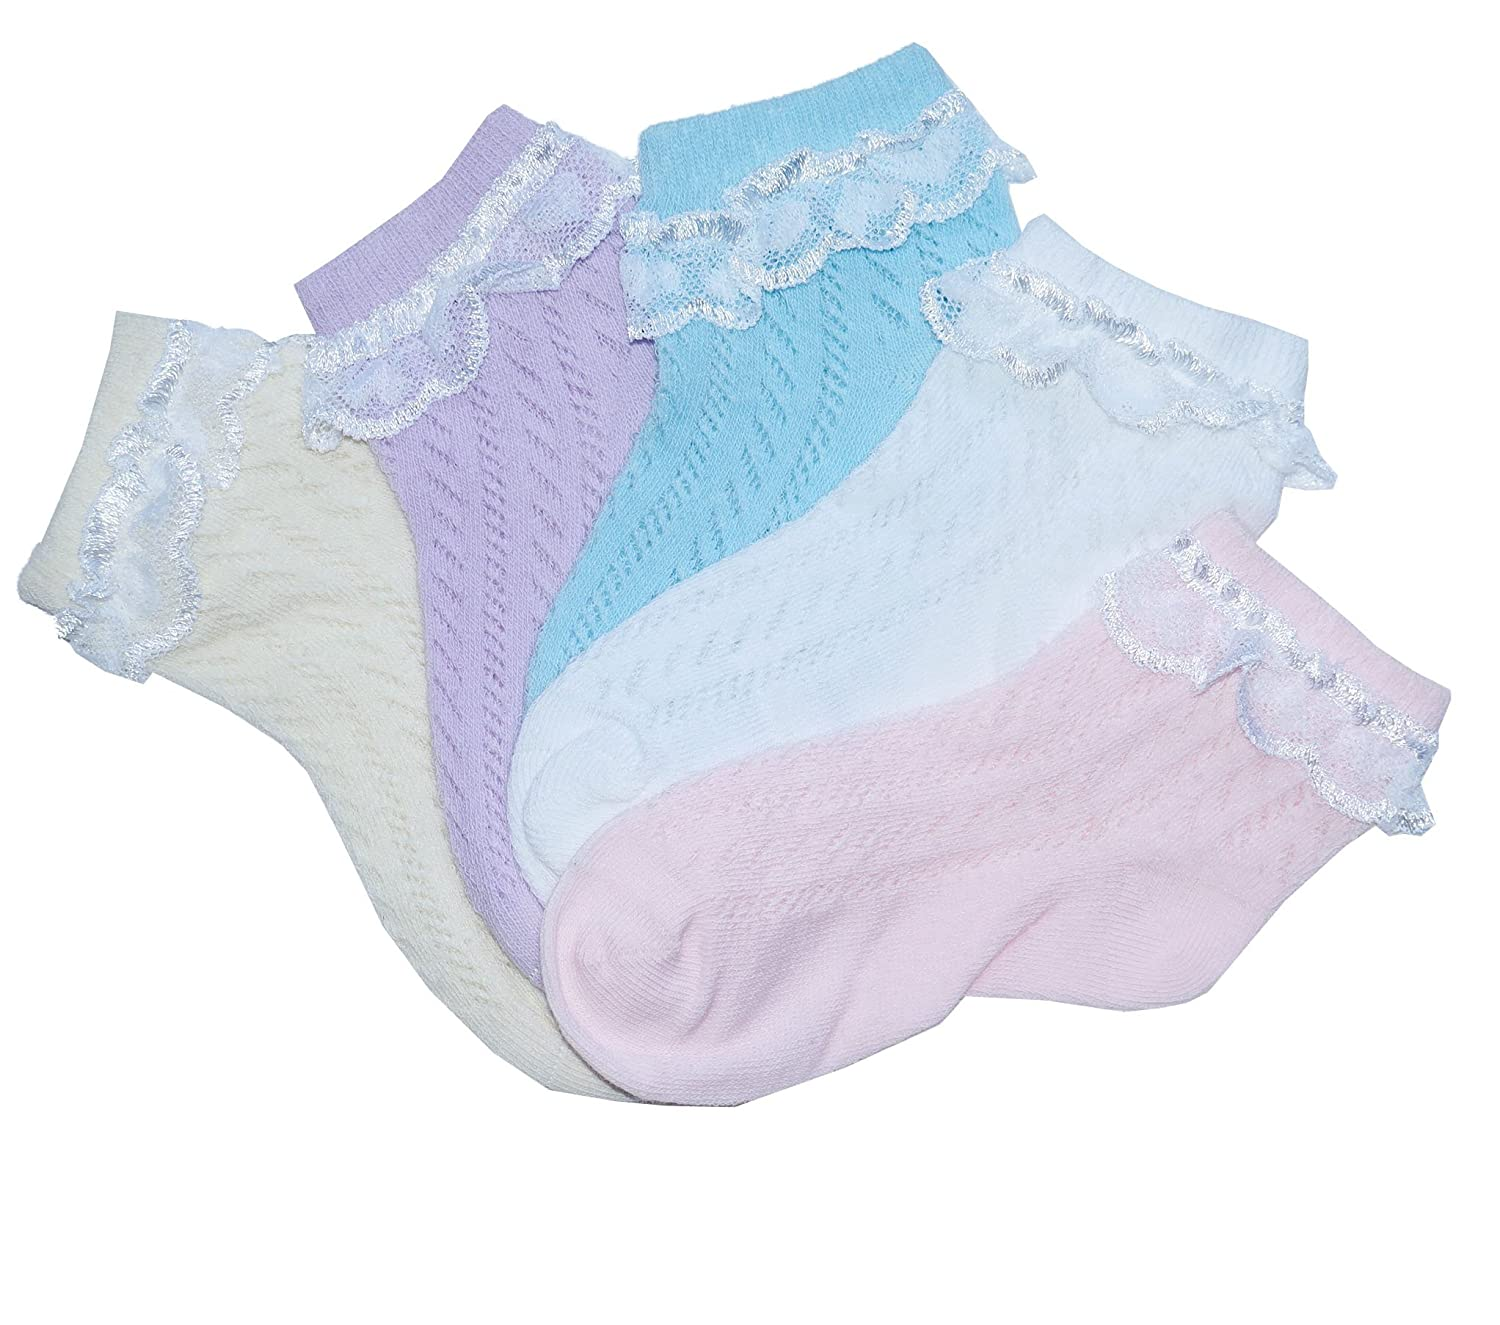 Baby girls ankle socks with flat toe seam for sensitive feet